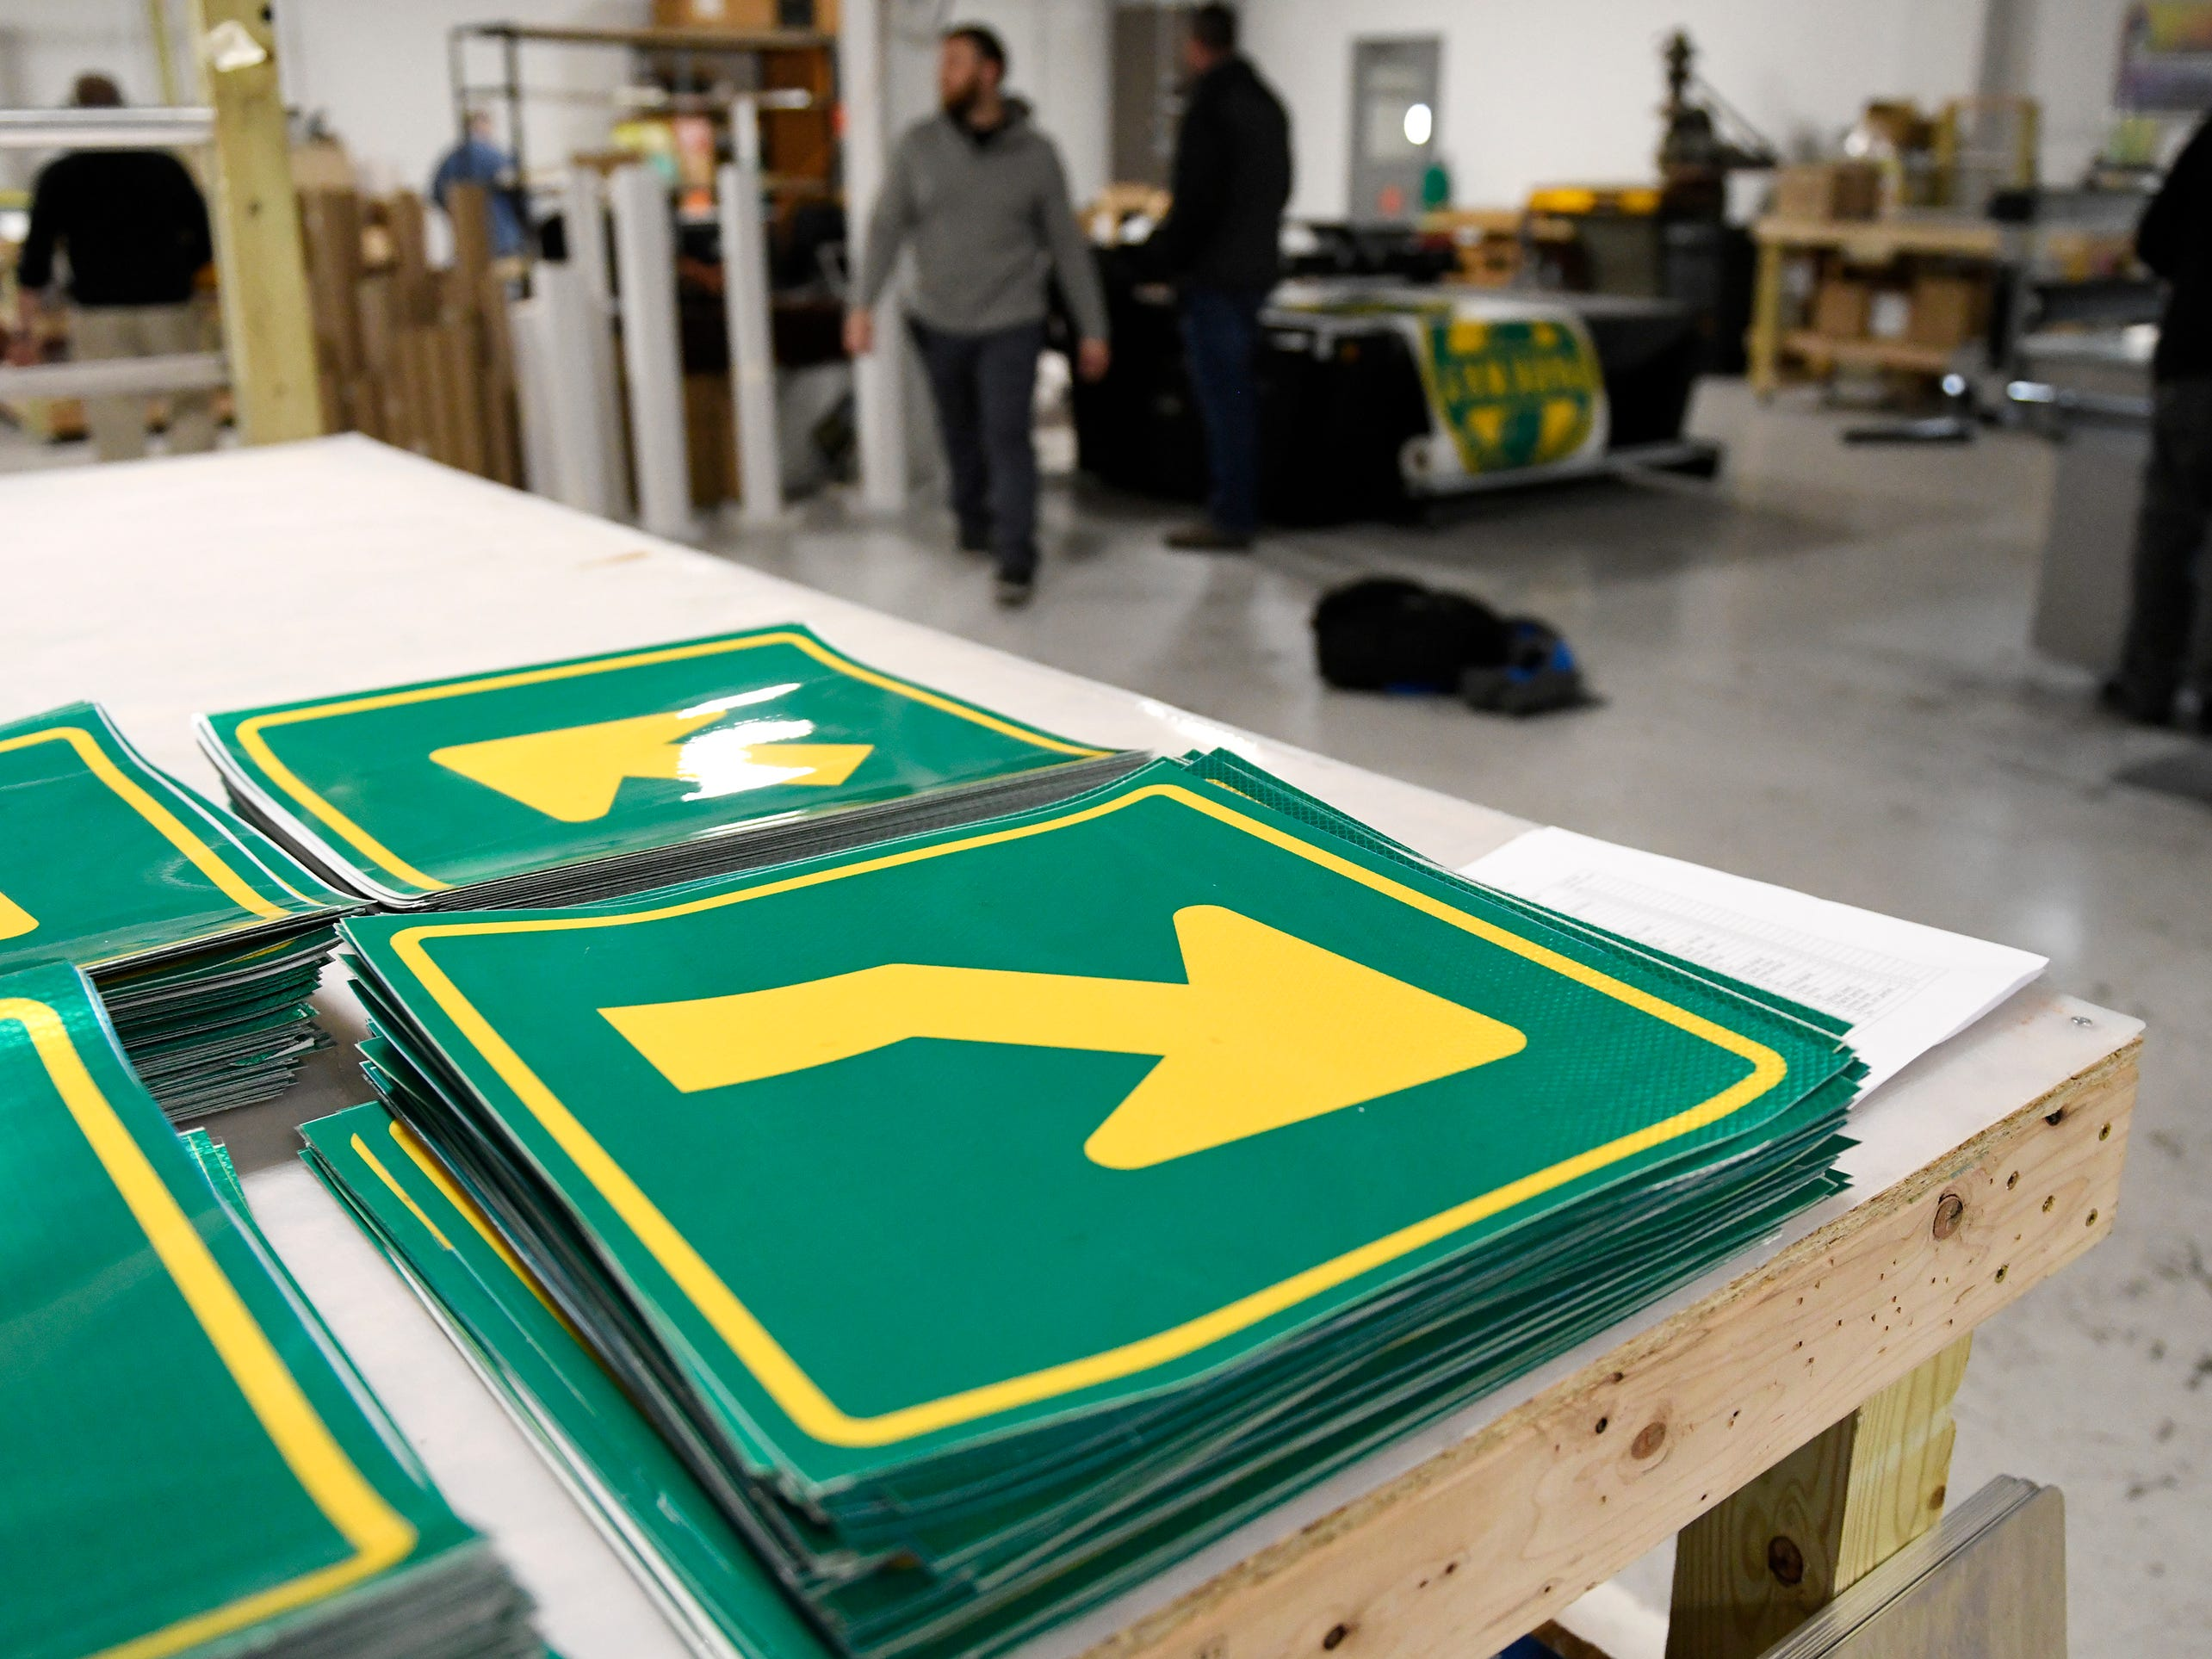 Garden State Highway Products, Inc. 140,000 square foot facility in Millville is owned by Sharon and Robert Green, who started working in the traffic sign industry in the late 1970s. The company is the largest traffic, street, specialty and overhead sign fabricator in the Eastern United States.